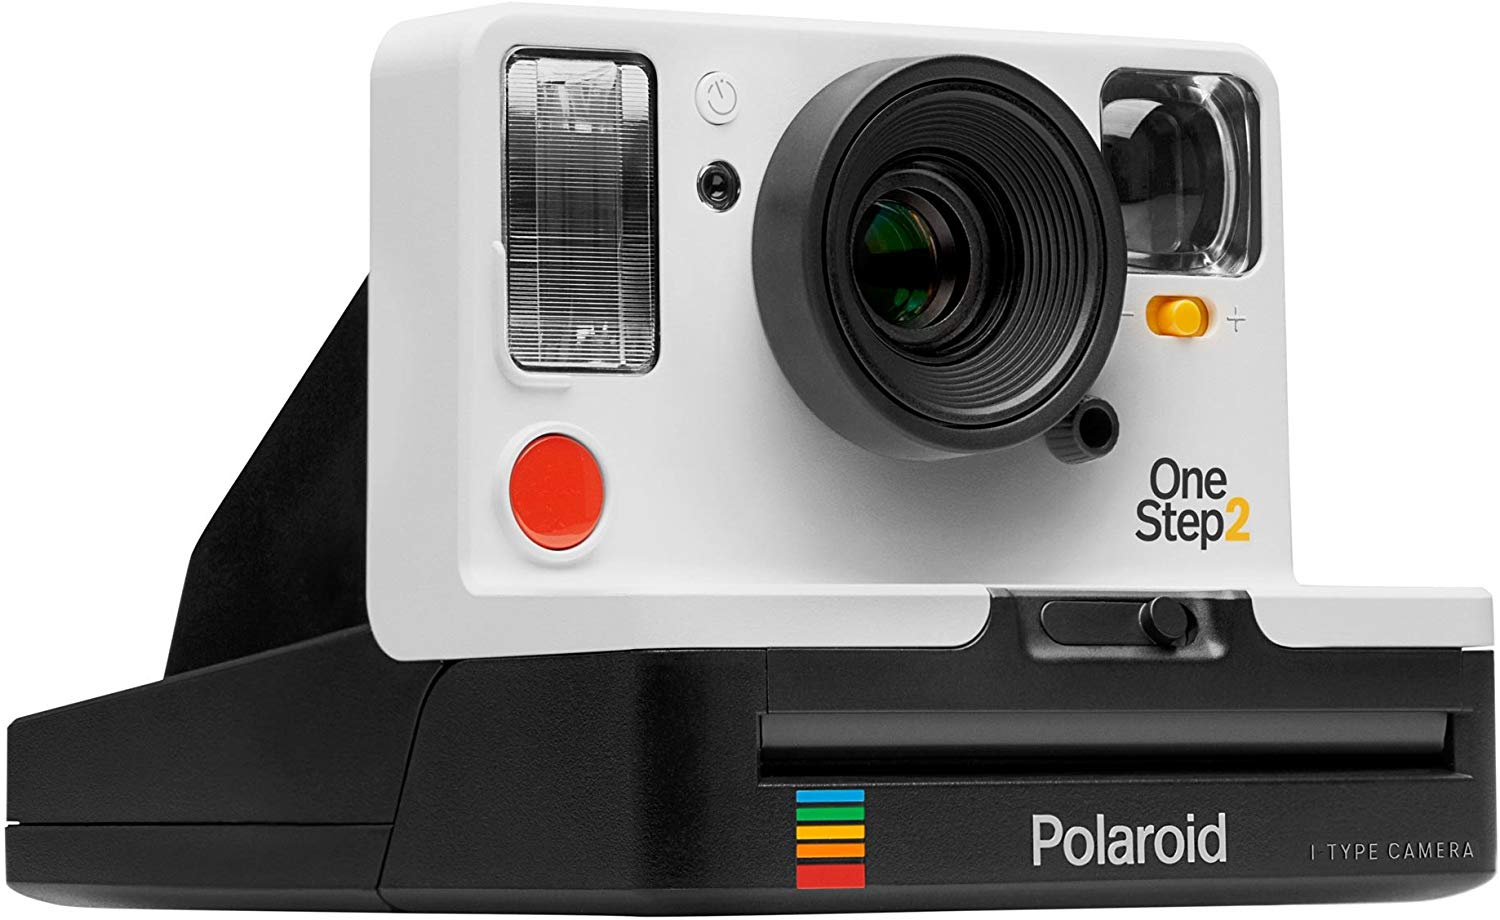 Polaroid Originals 9008 One Step 2 View Finder Instant i-Type Camera